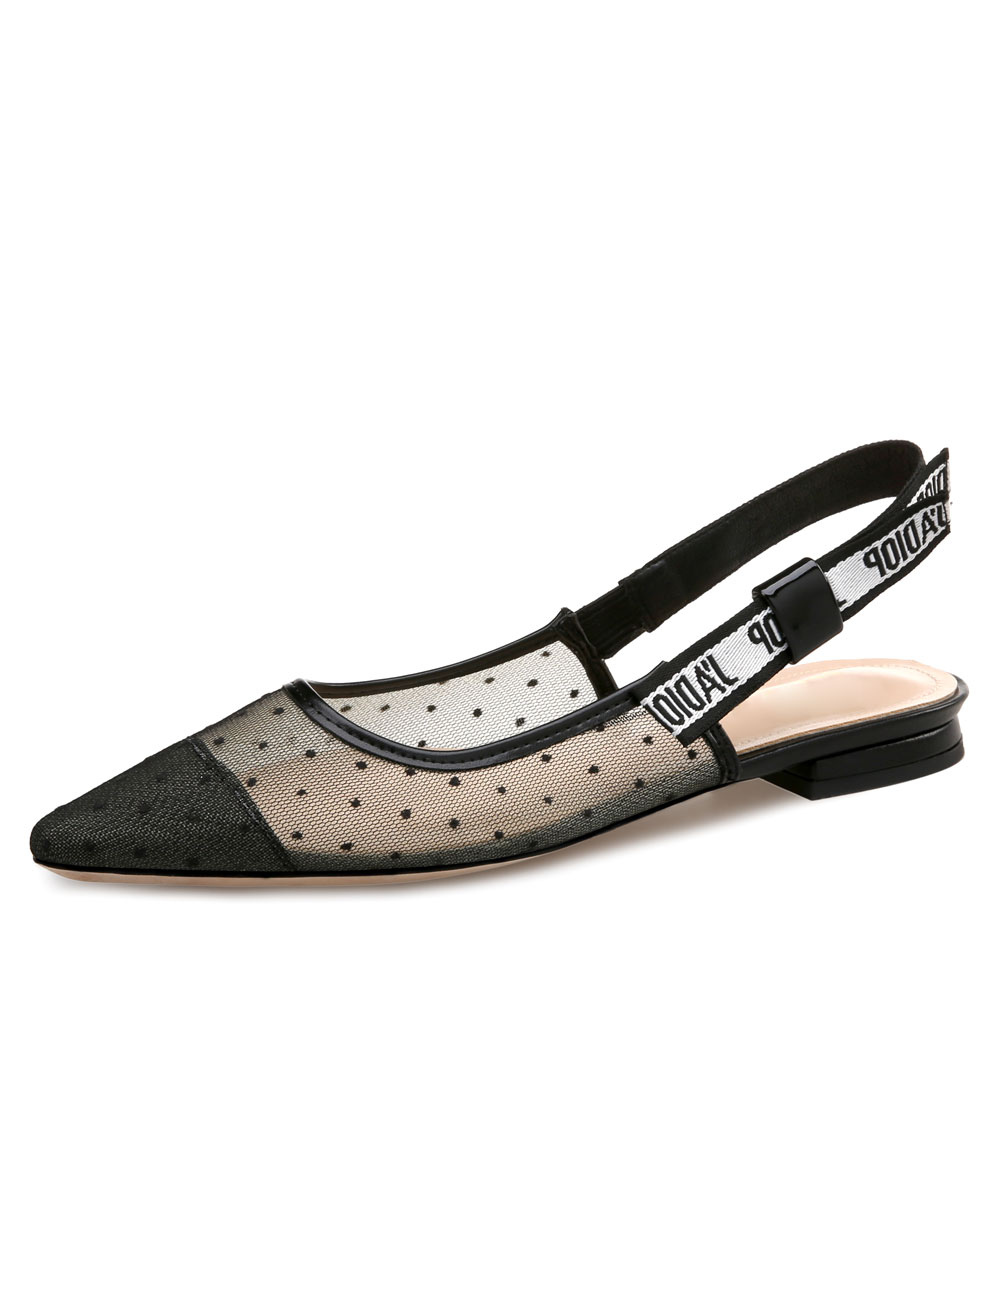 Women's Black Flats Lace Pointed Toe